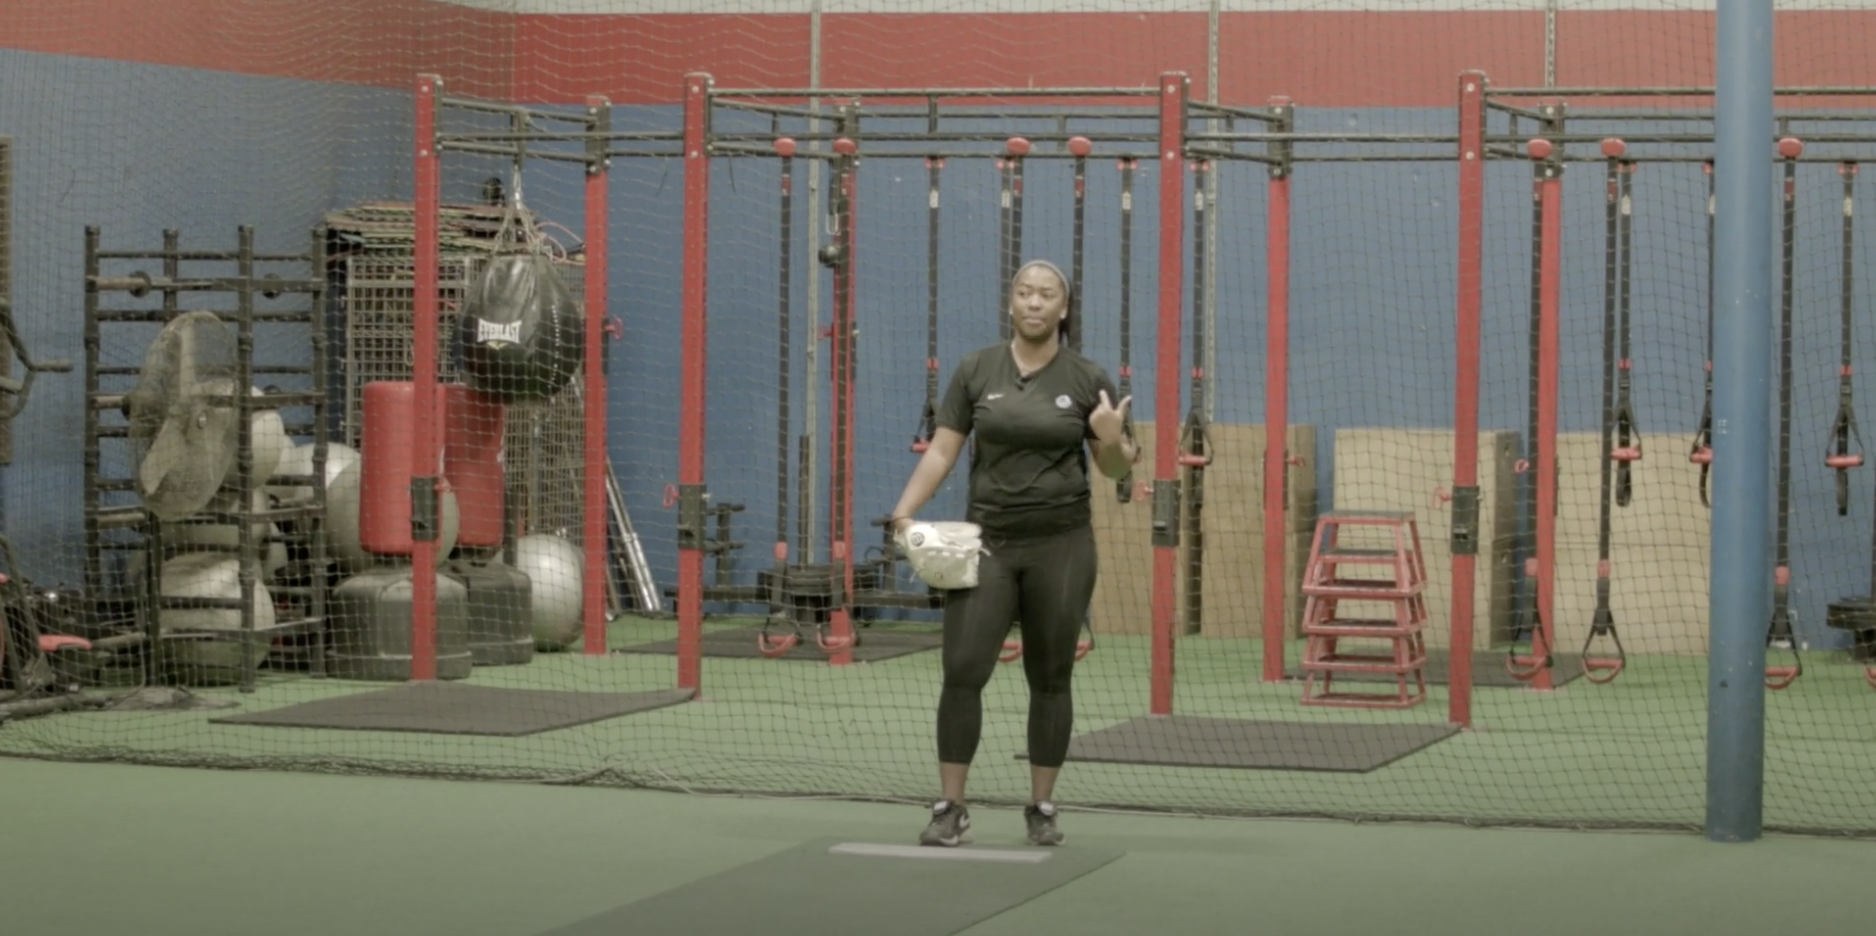 How Pitchers Field - pitching drills